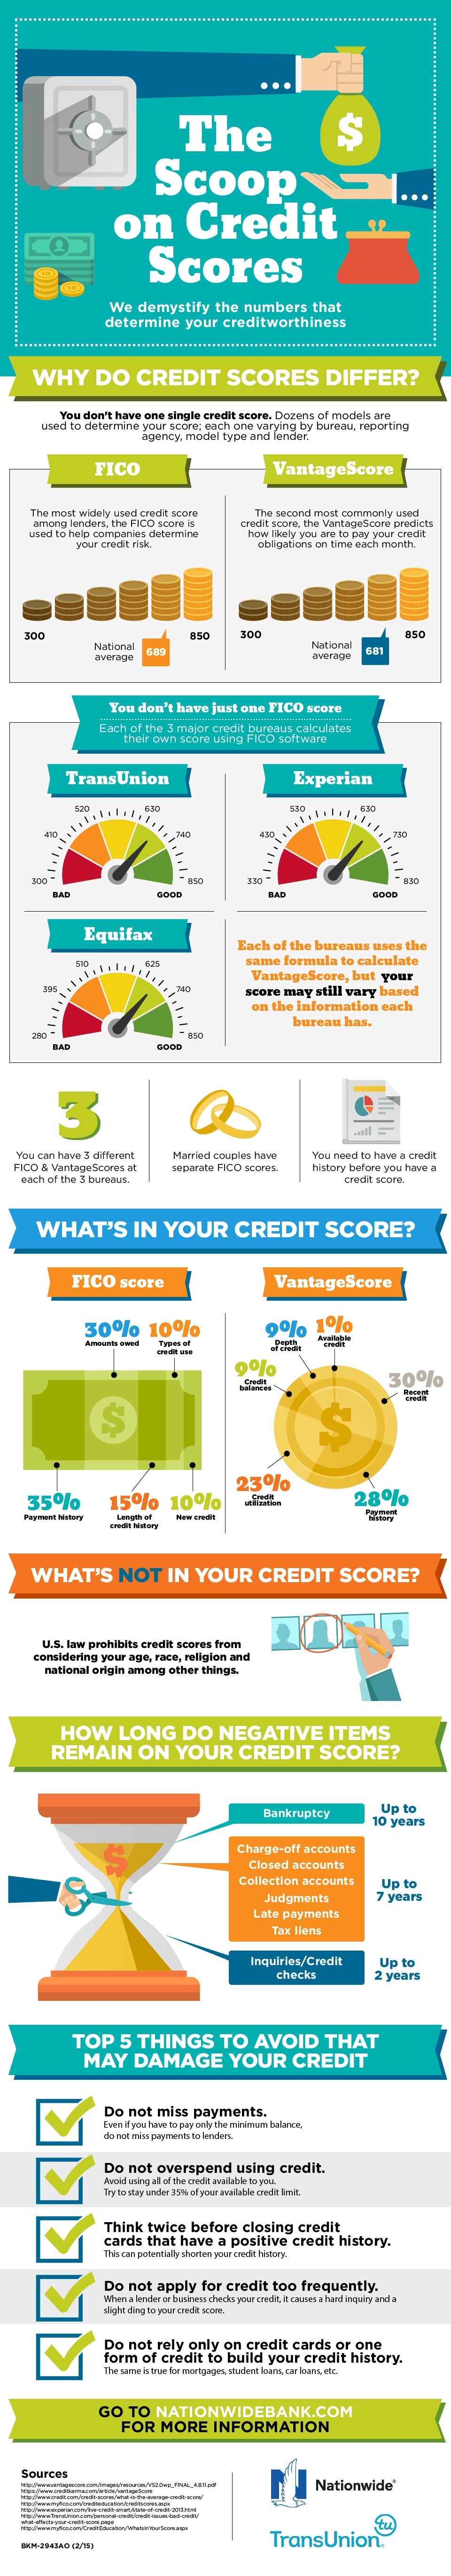 Credit-Score-Infographic.png